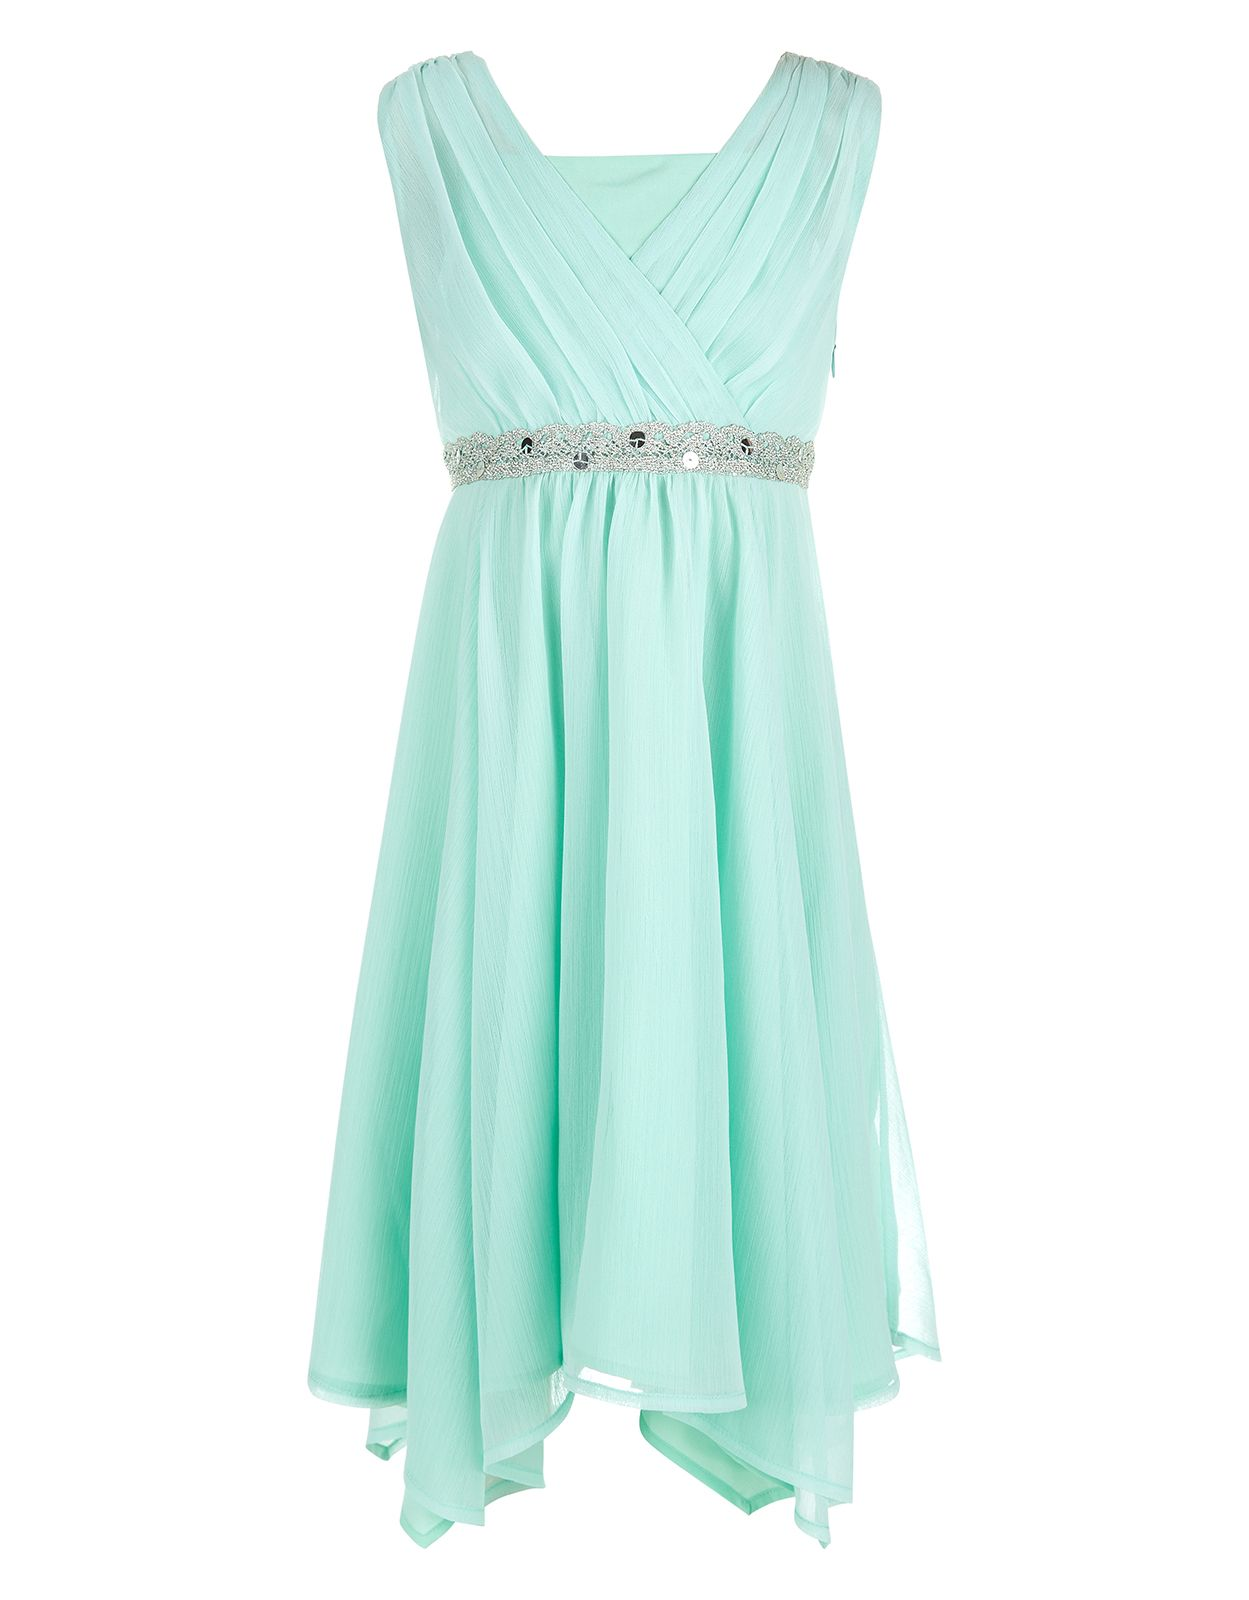 A beautiful bridesmaids dress in a beautiful wedding color ...